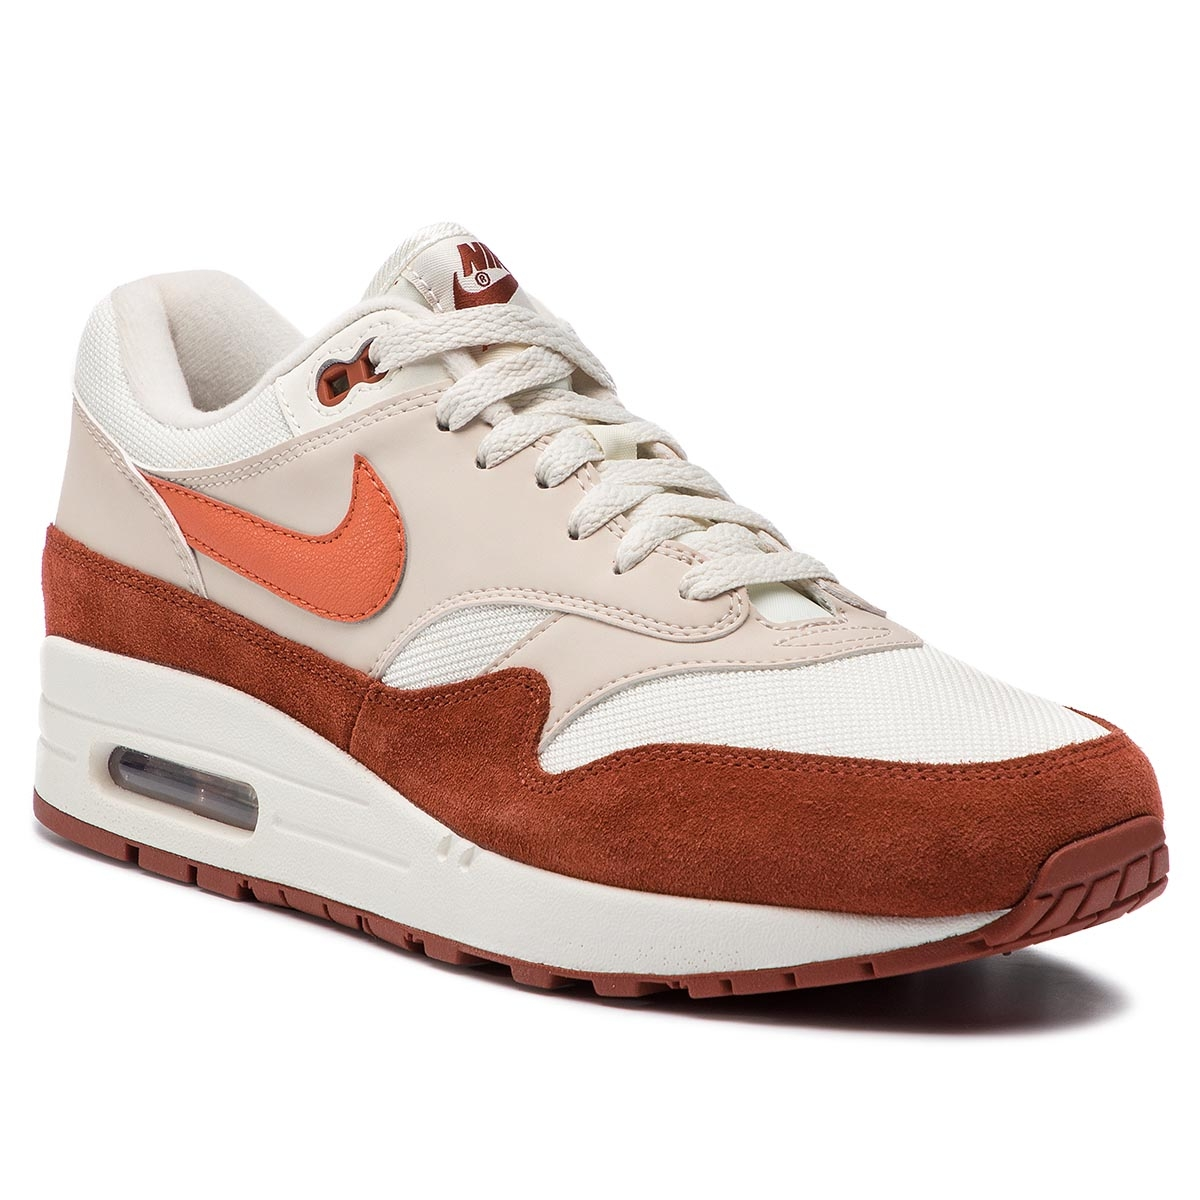 best website 88afc 05cf5 Shoes NIKE Air Max 1 AH8145 104 Sail Vintage Coral Mars Stone